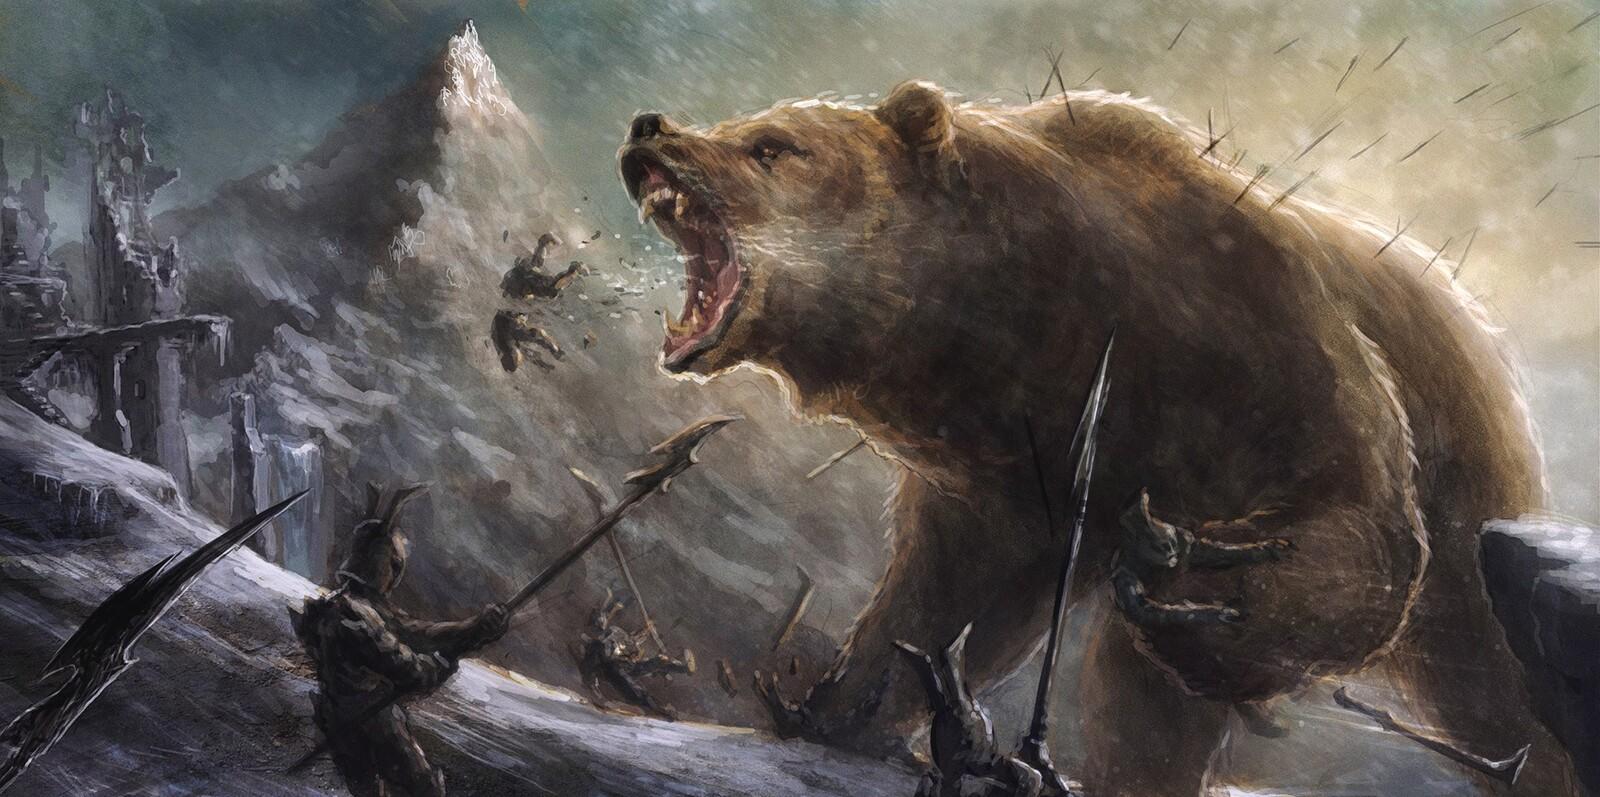 Beorn: Thunder on the Mountain